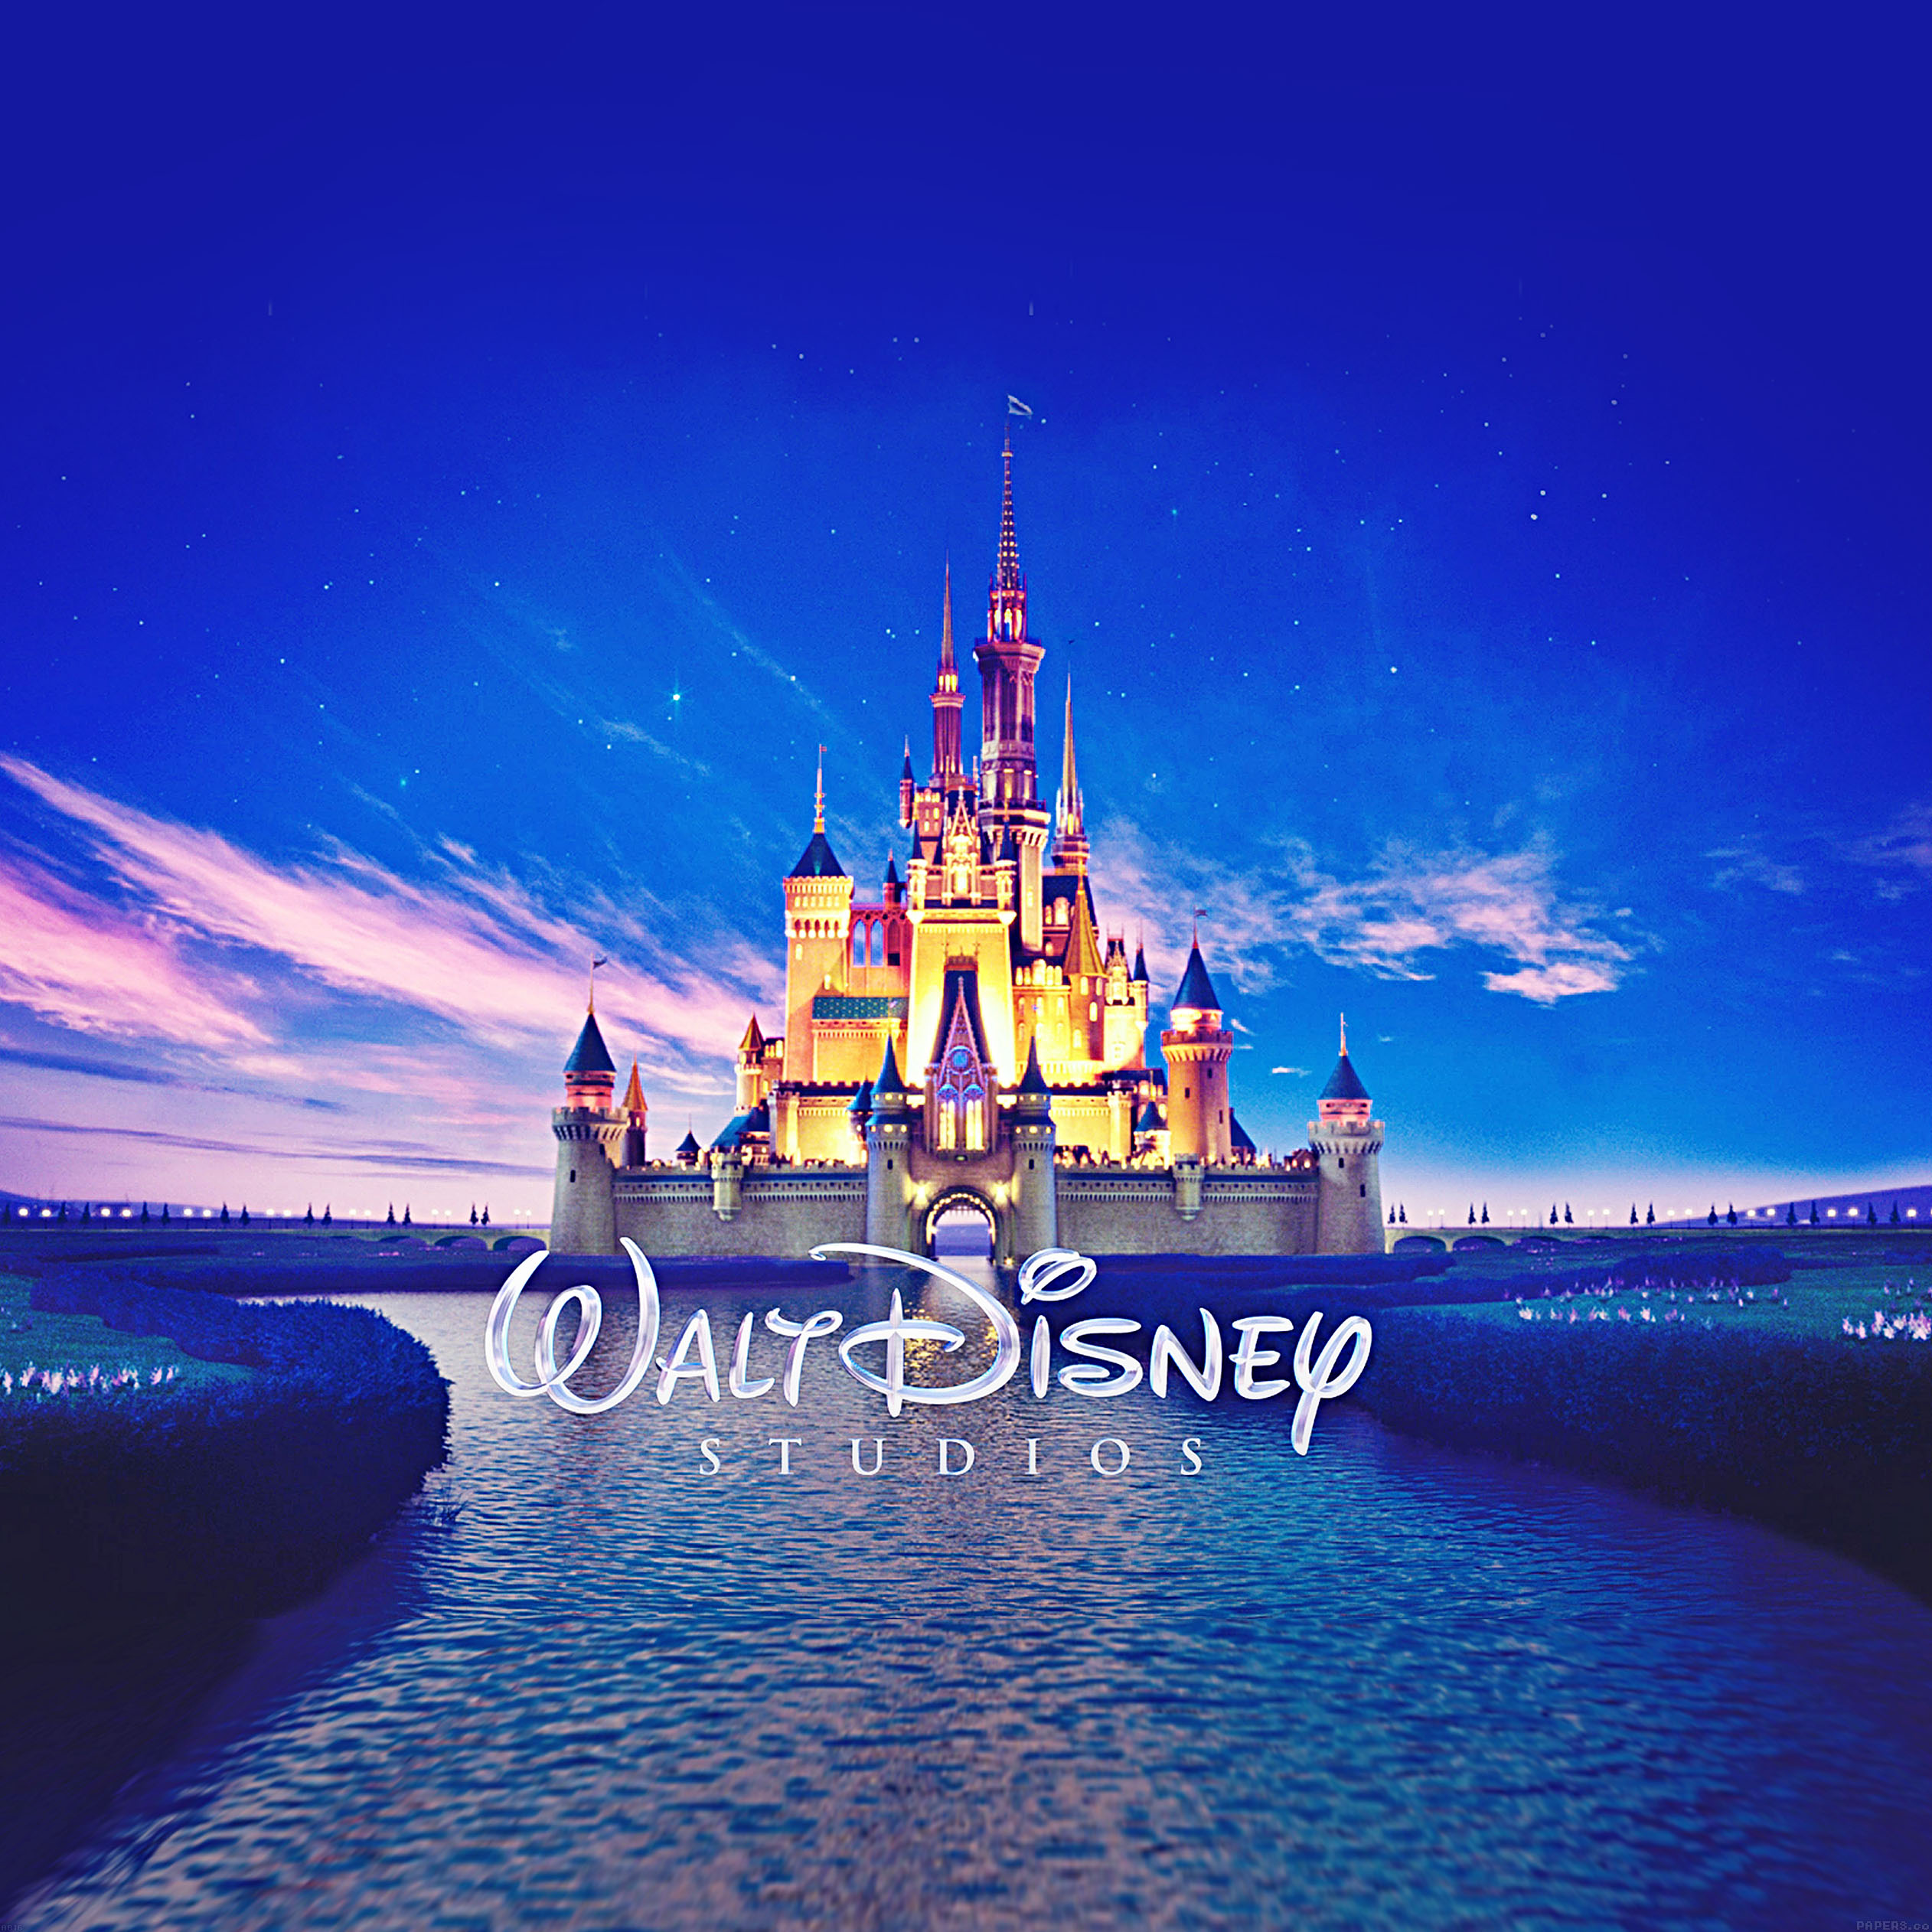 freeios7 ab16wallpaperwaltdisneystudioscastle